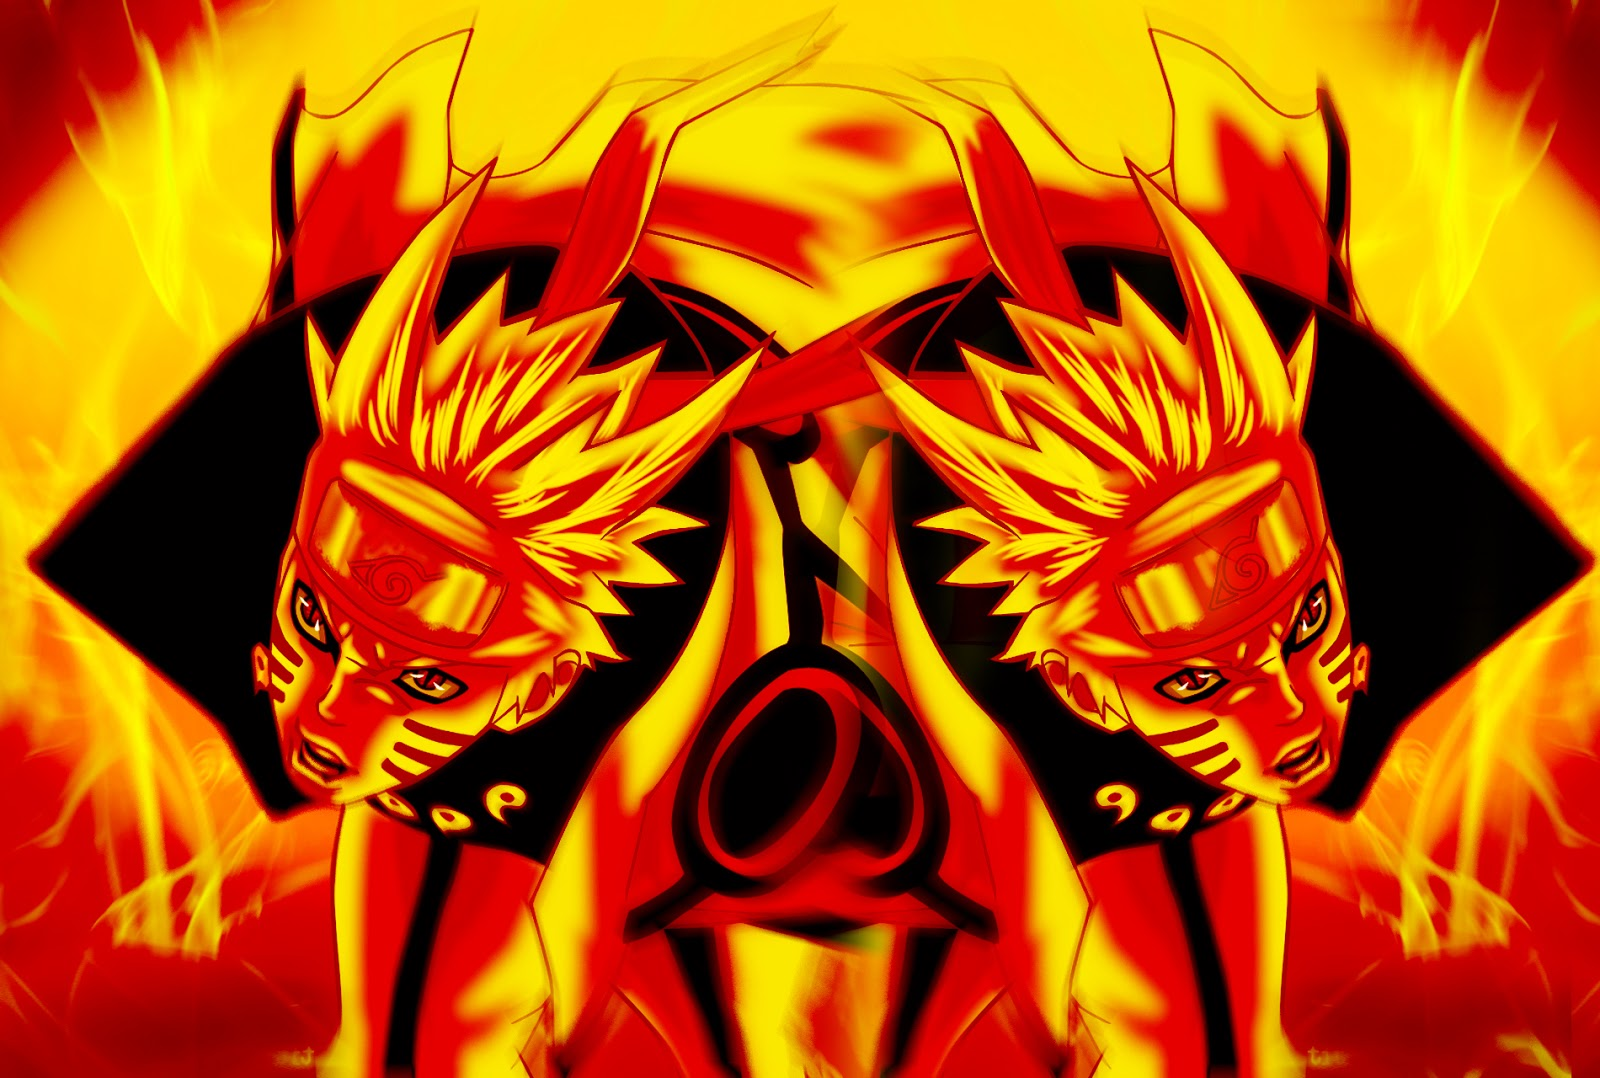 naruto kurama mode wallpaper 9